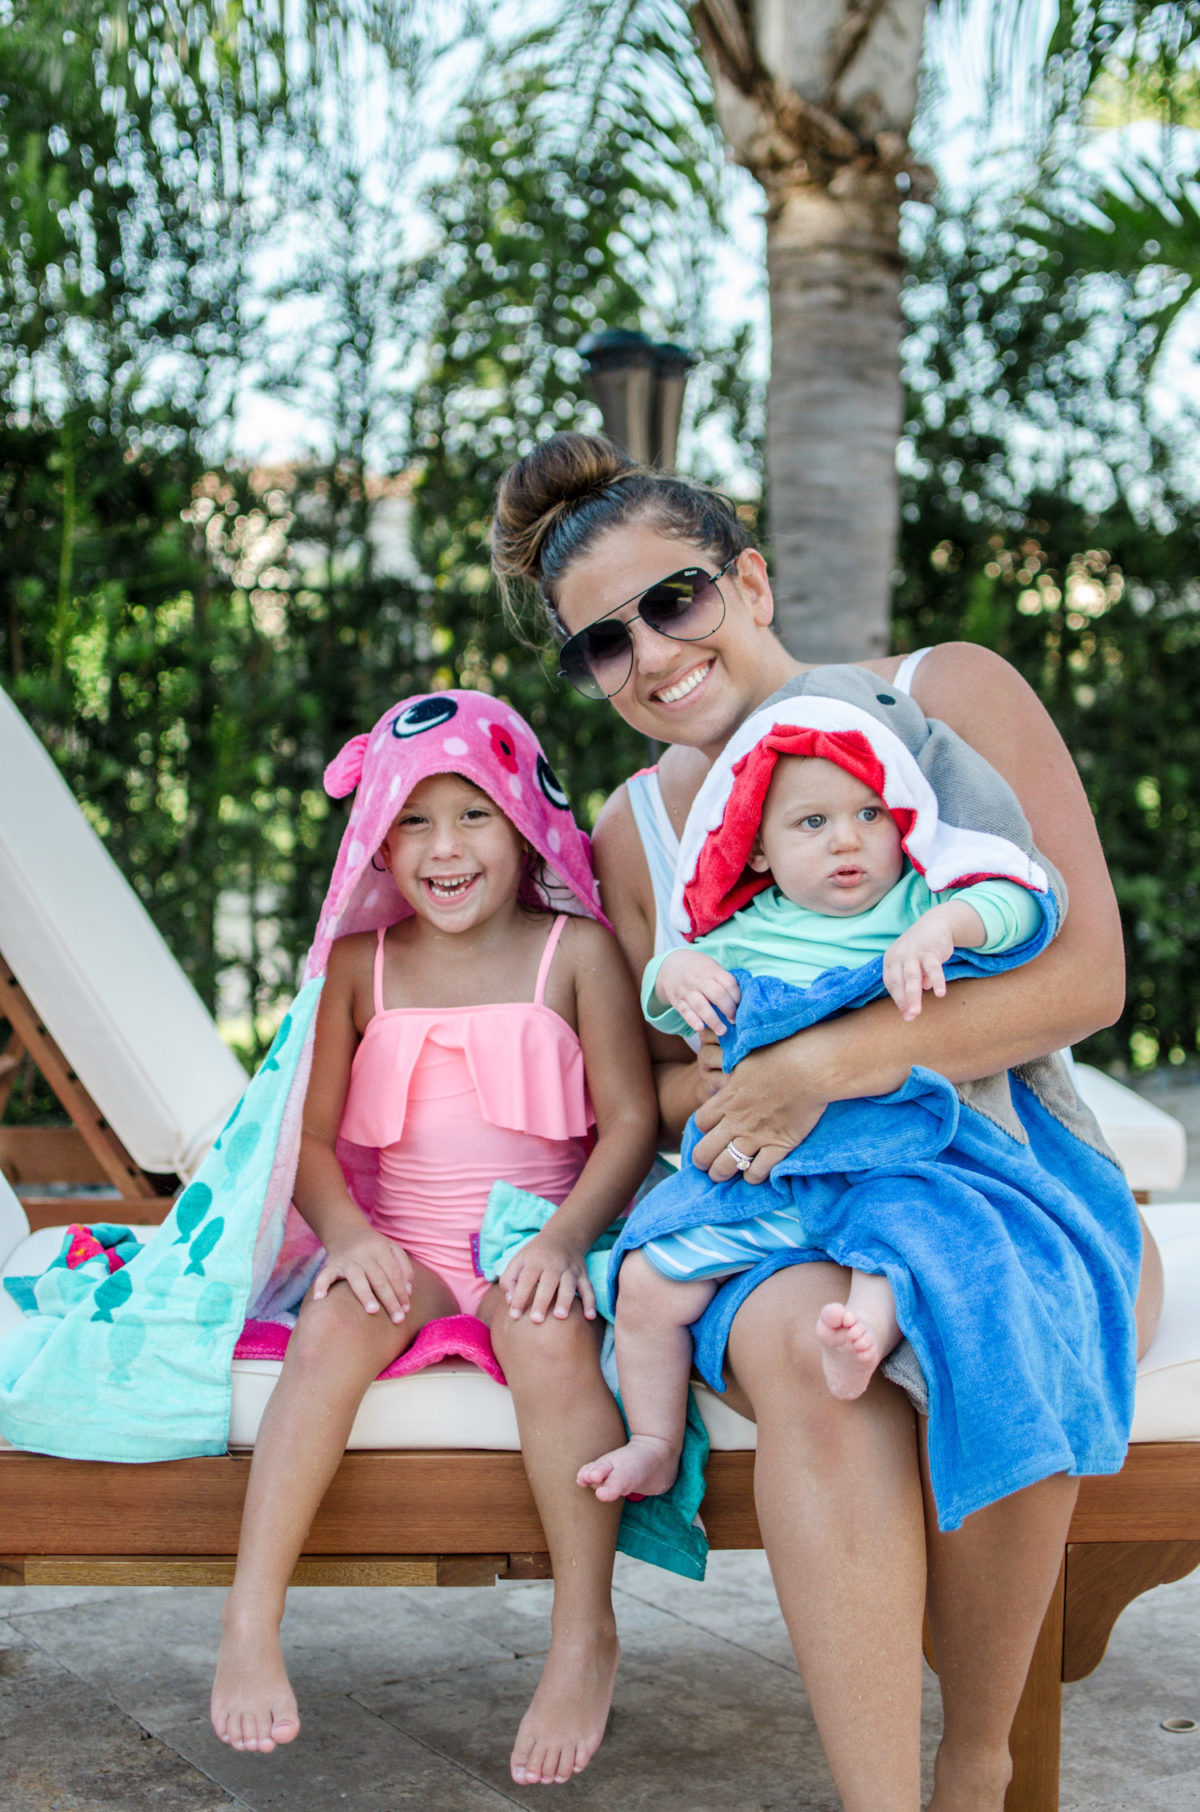 baby shark towel, hooded baby towel, hooded kids towel, Three Easy Ways to Keep Kids Safe During Pool Time